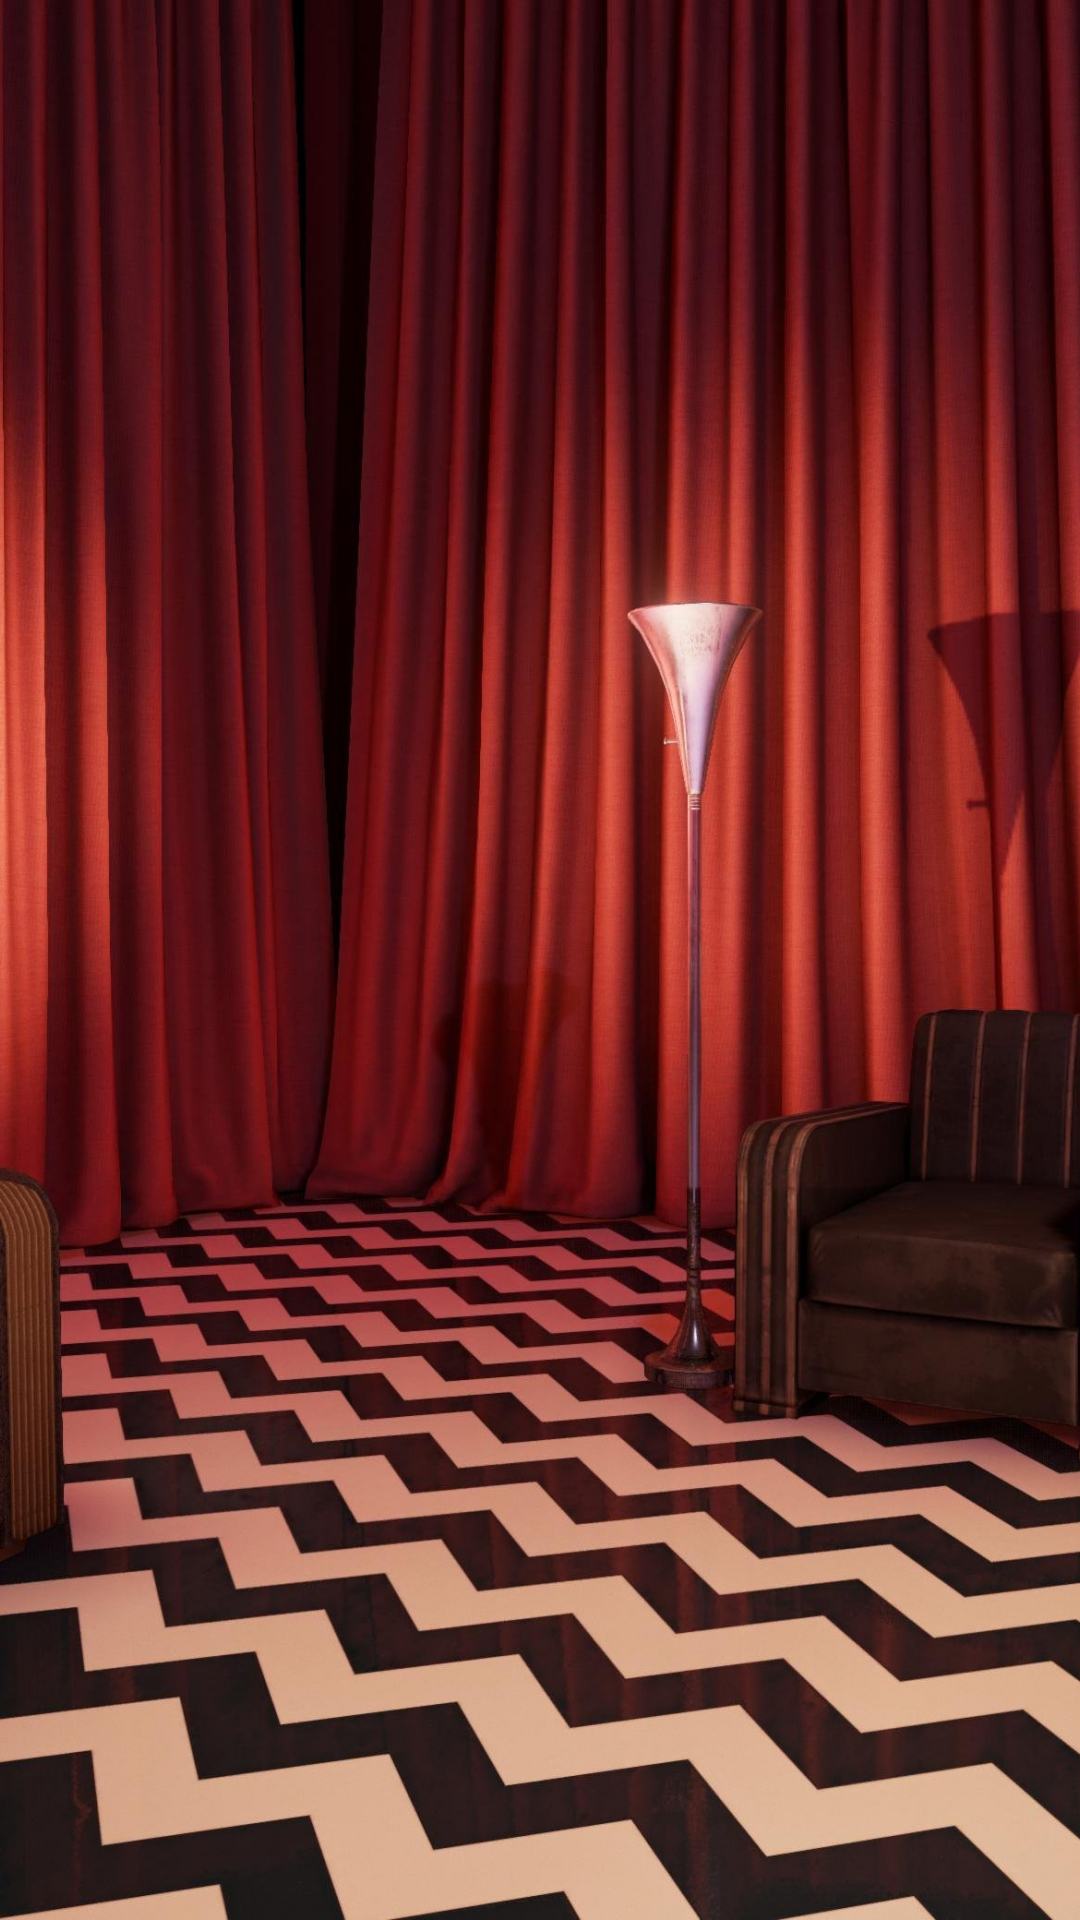 Free download Twin Peaks Wallpapers 33 [3840x2080] for ...